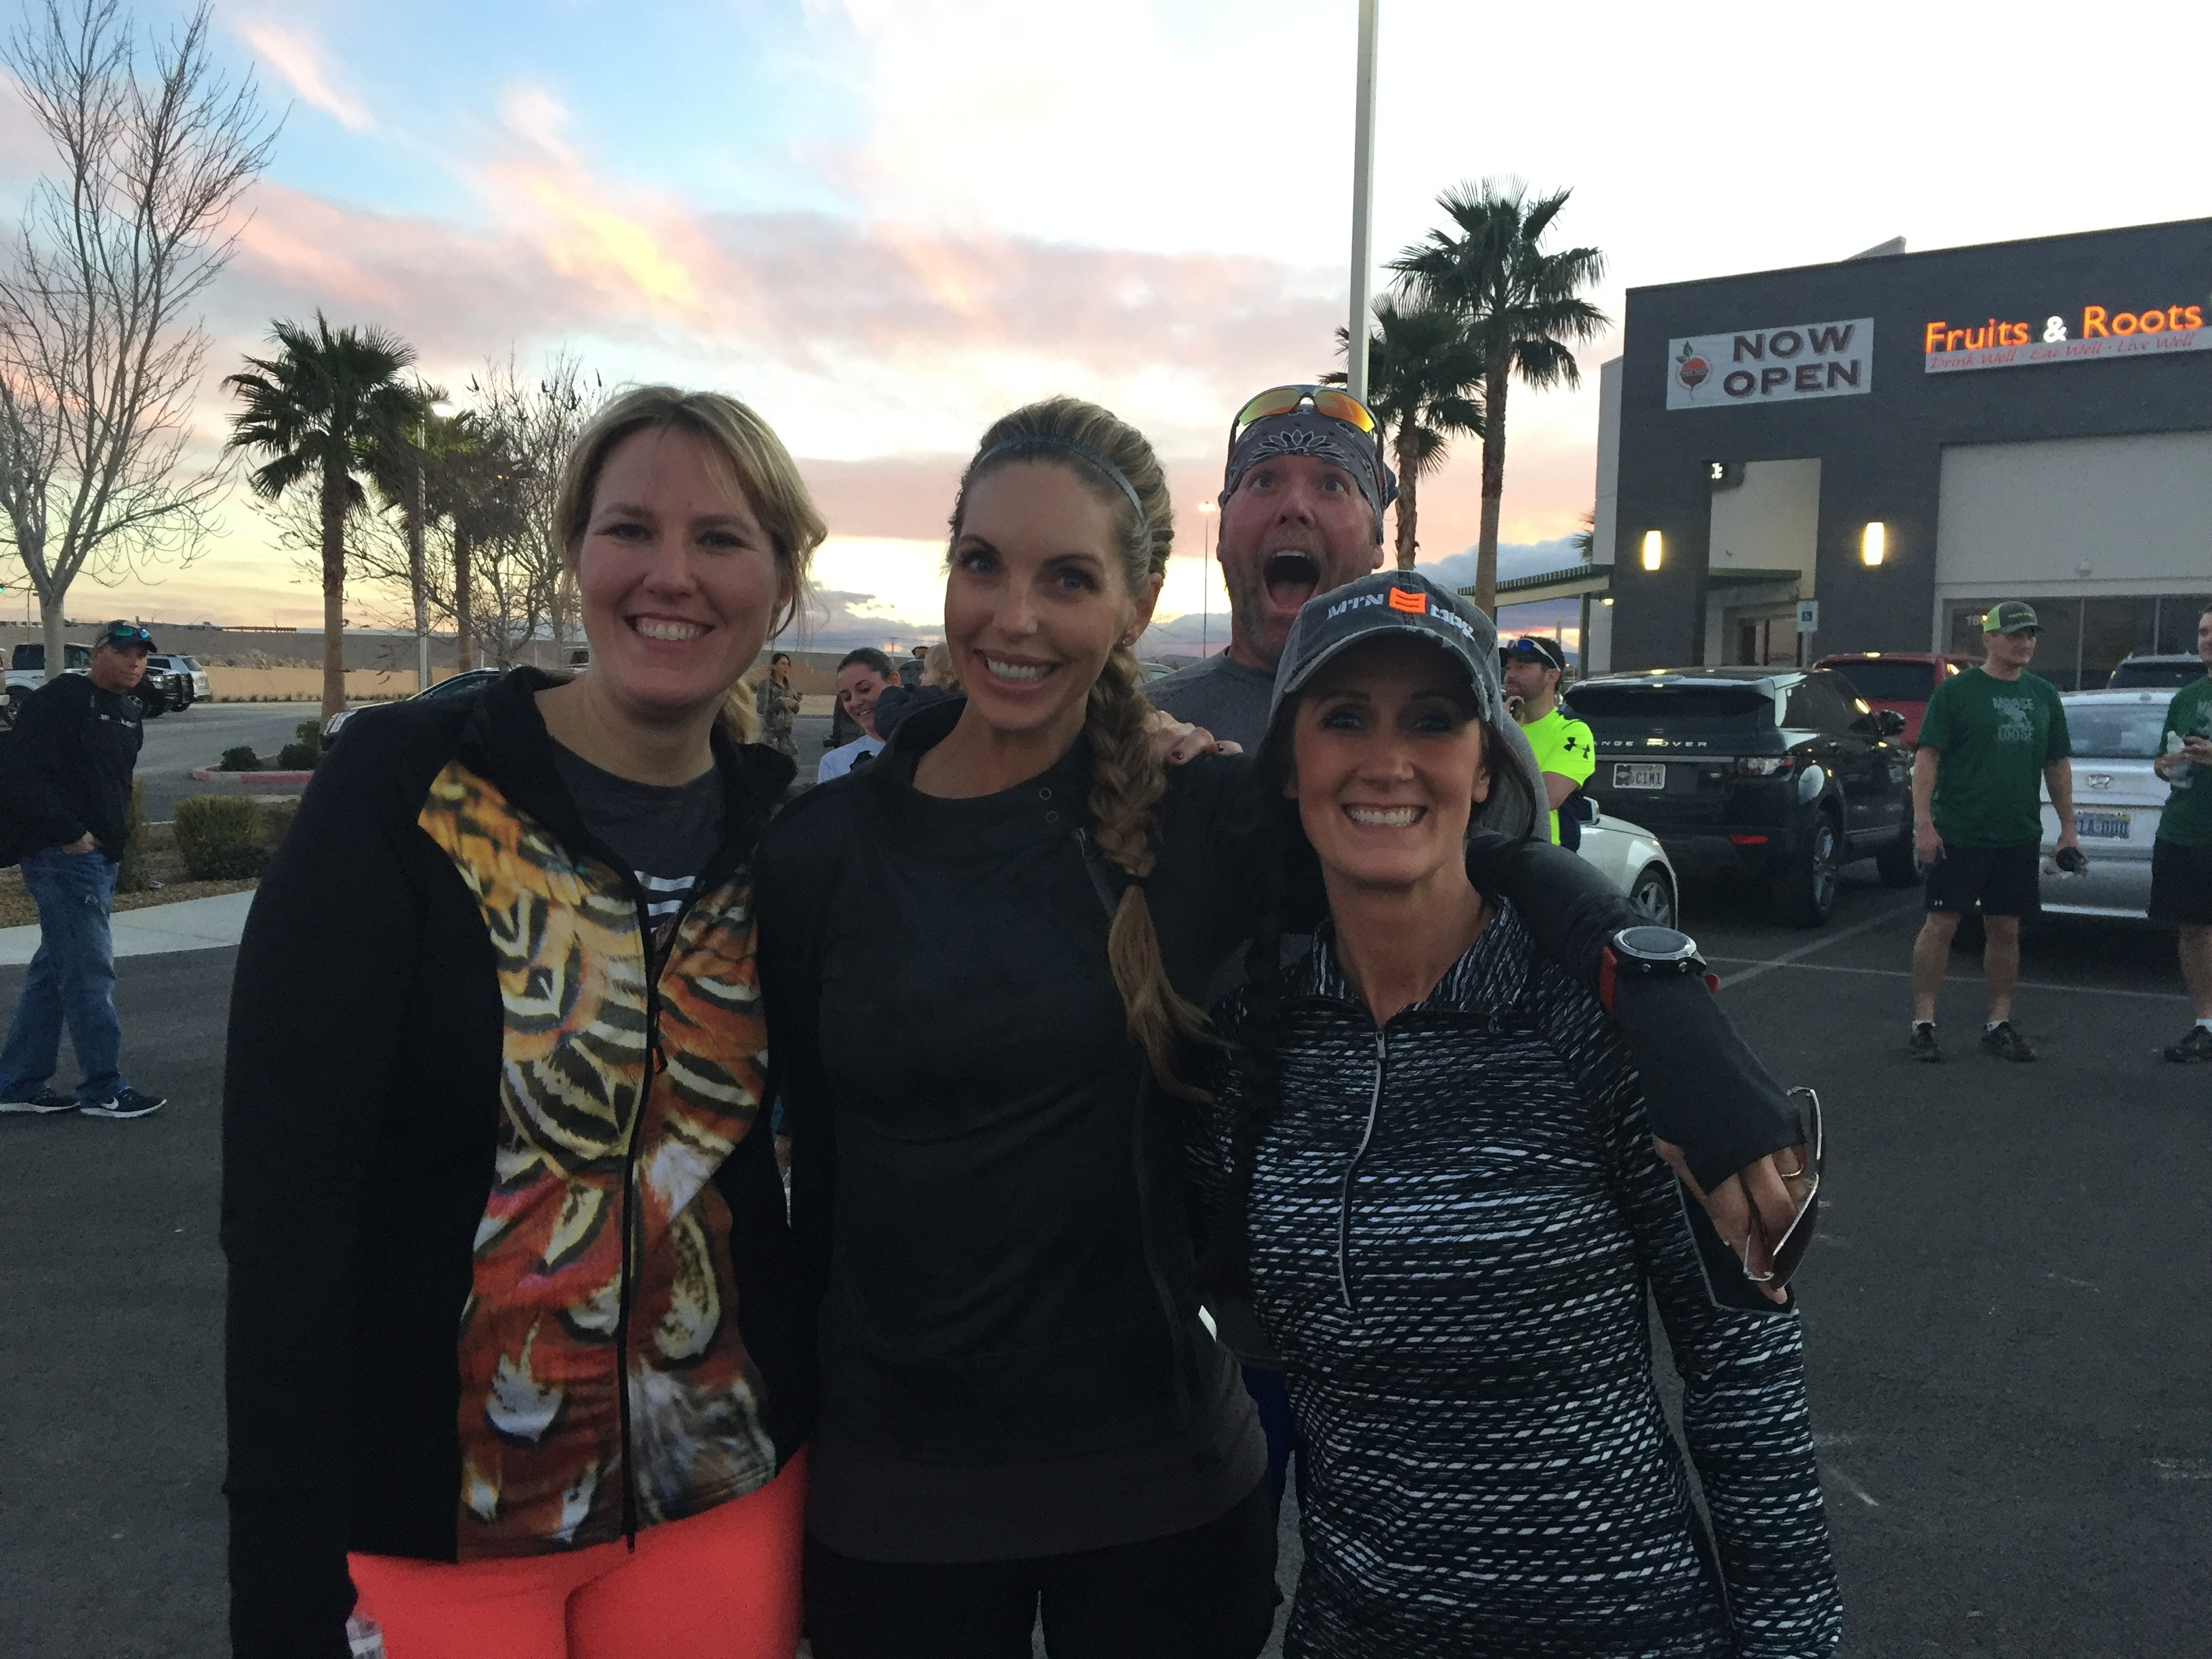 Me, Melissa Bachman and Julie McQueen, post-race with Daniel Lee Martin photo bombing...crazy kid.